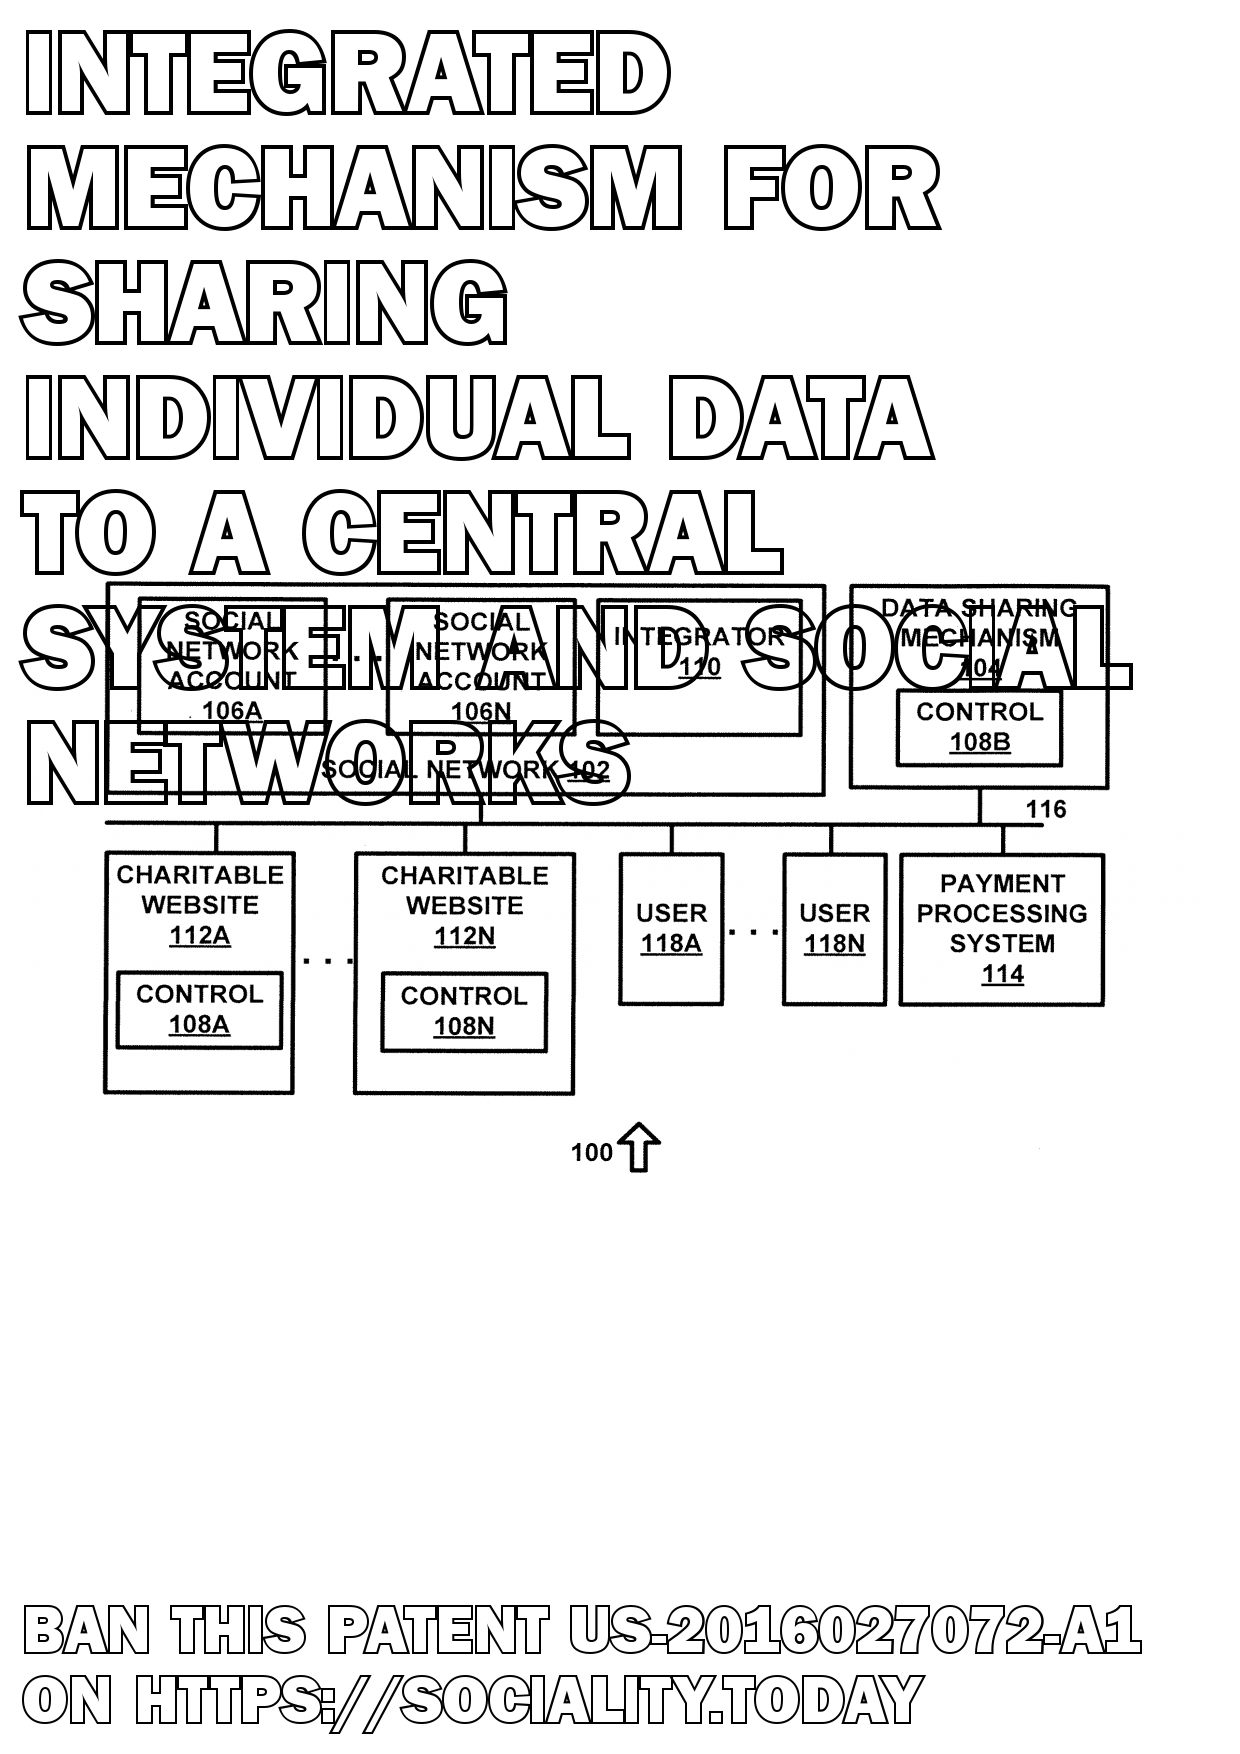 Integrated mechanism for sharing individual data to a central system and social networks  - US-2016027072-A1